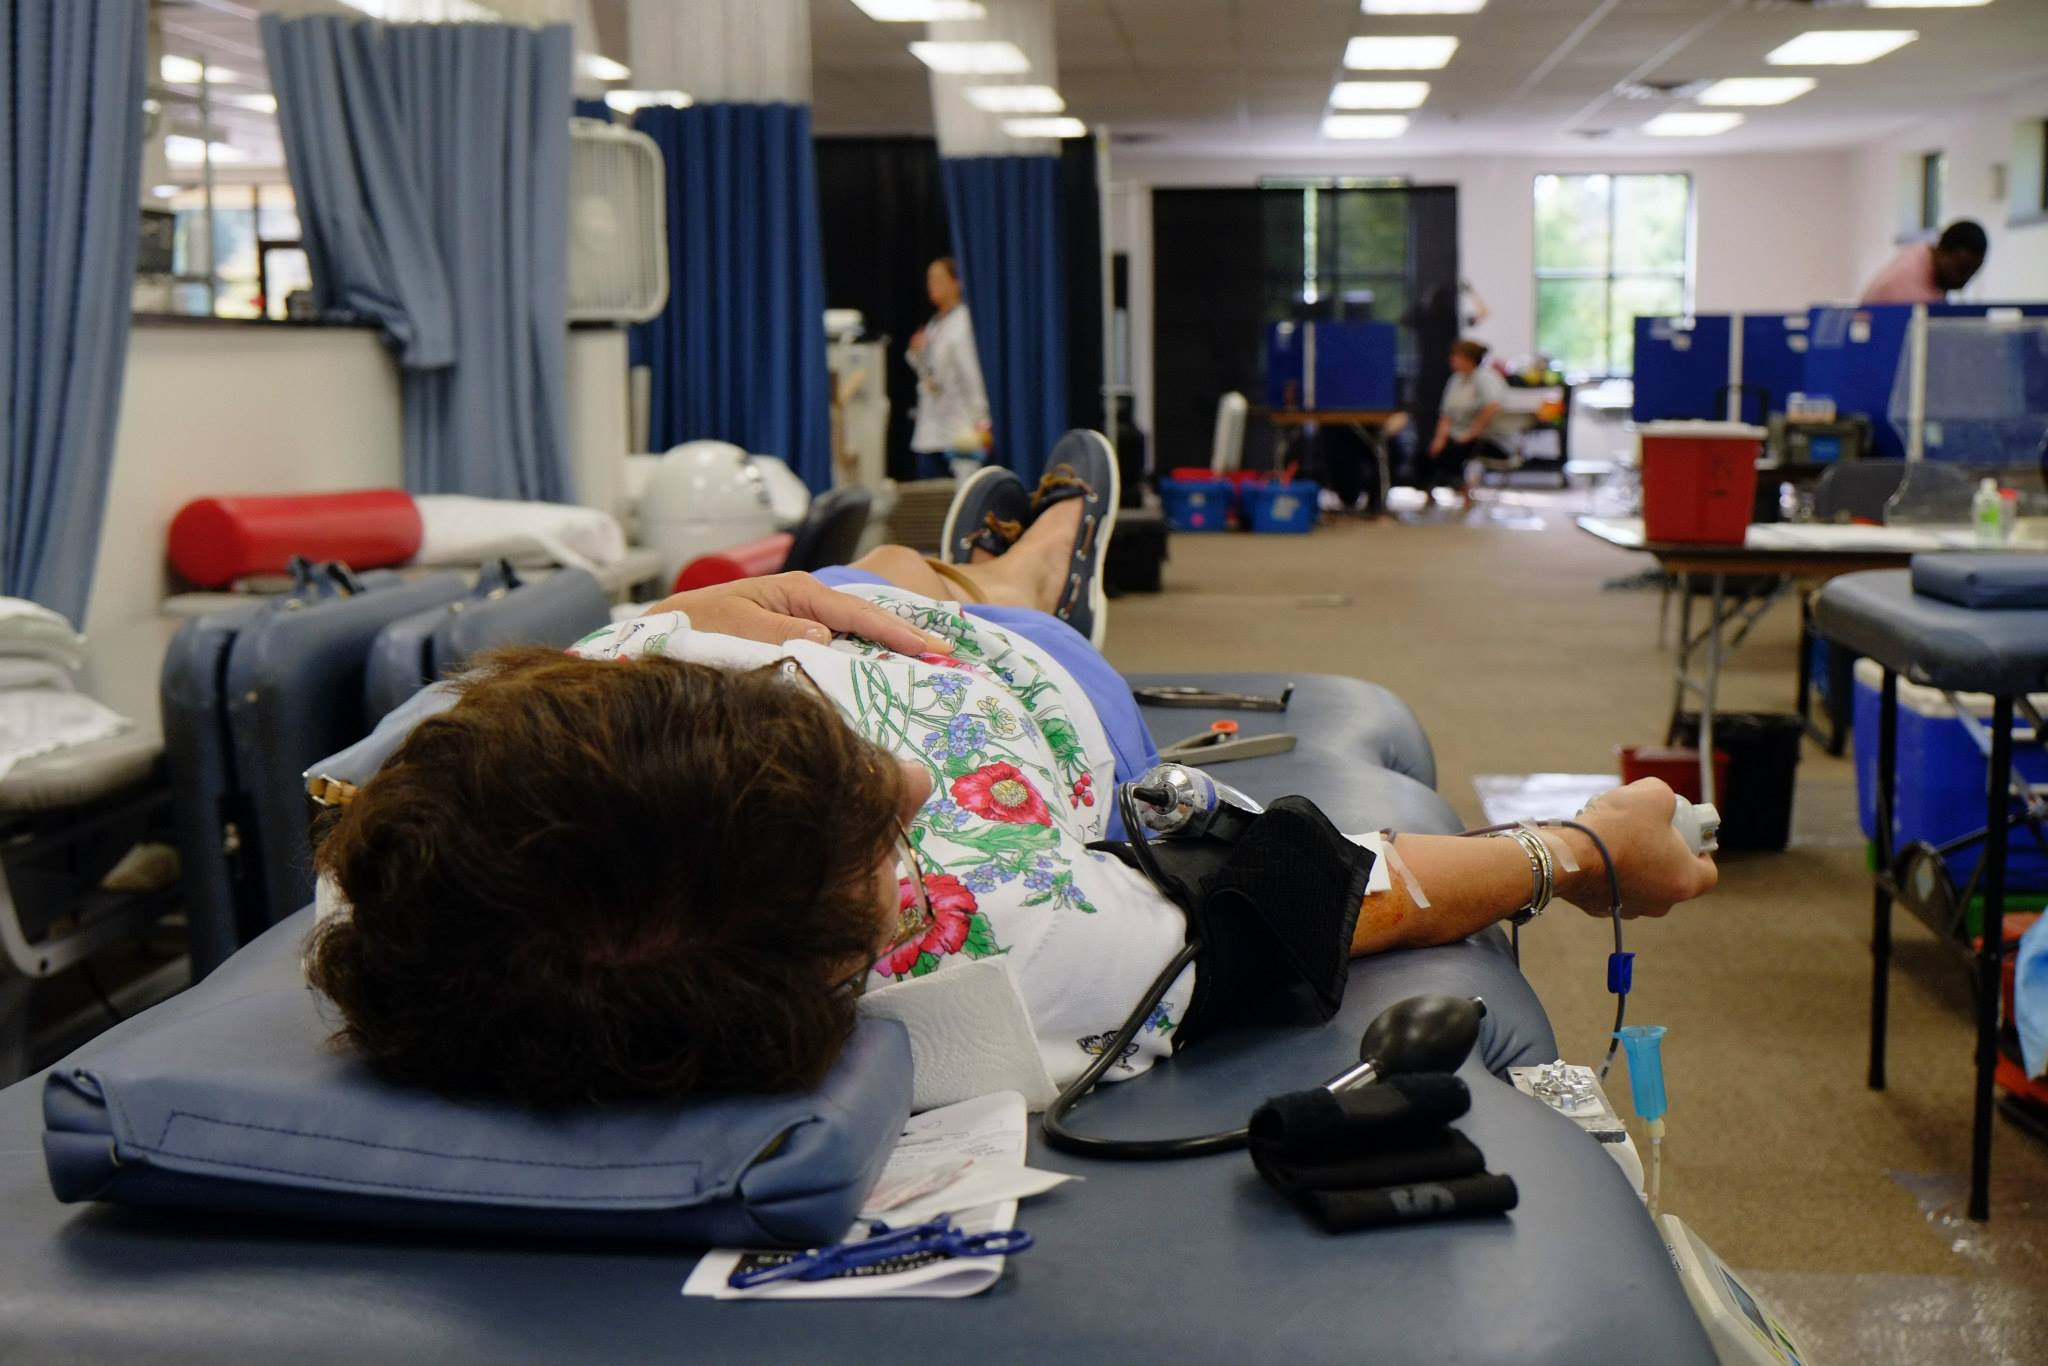 events_blooddrive_donating